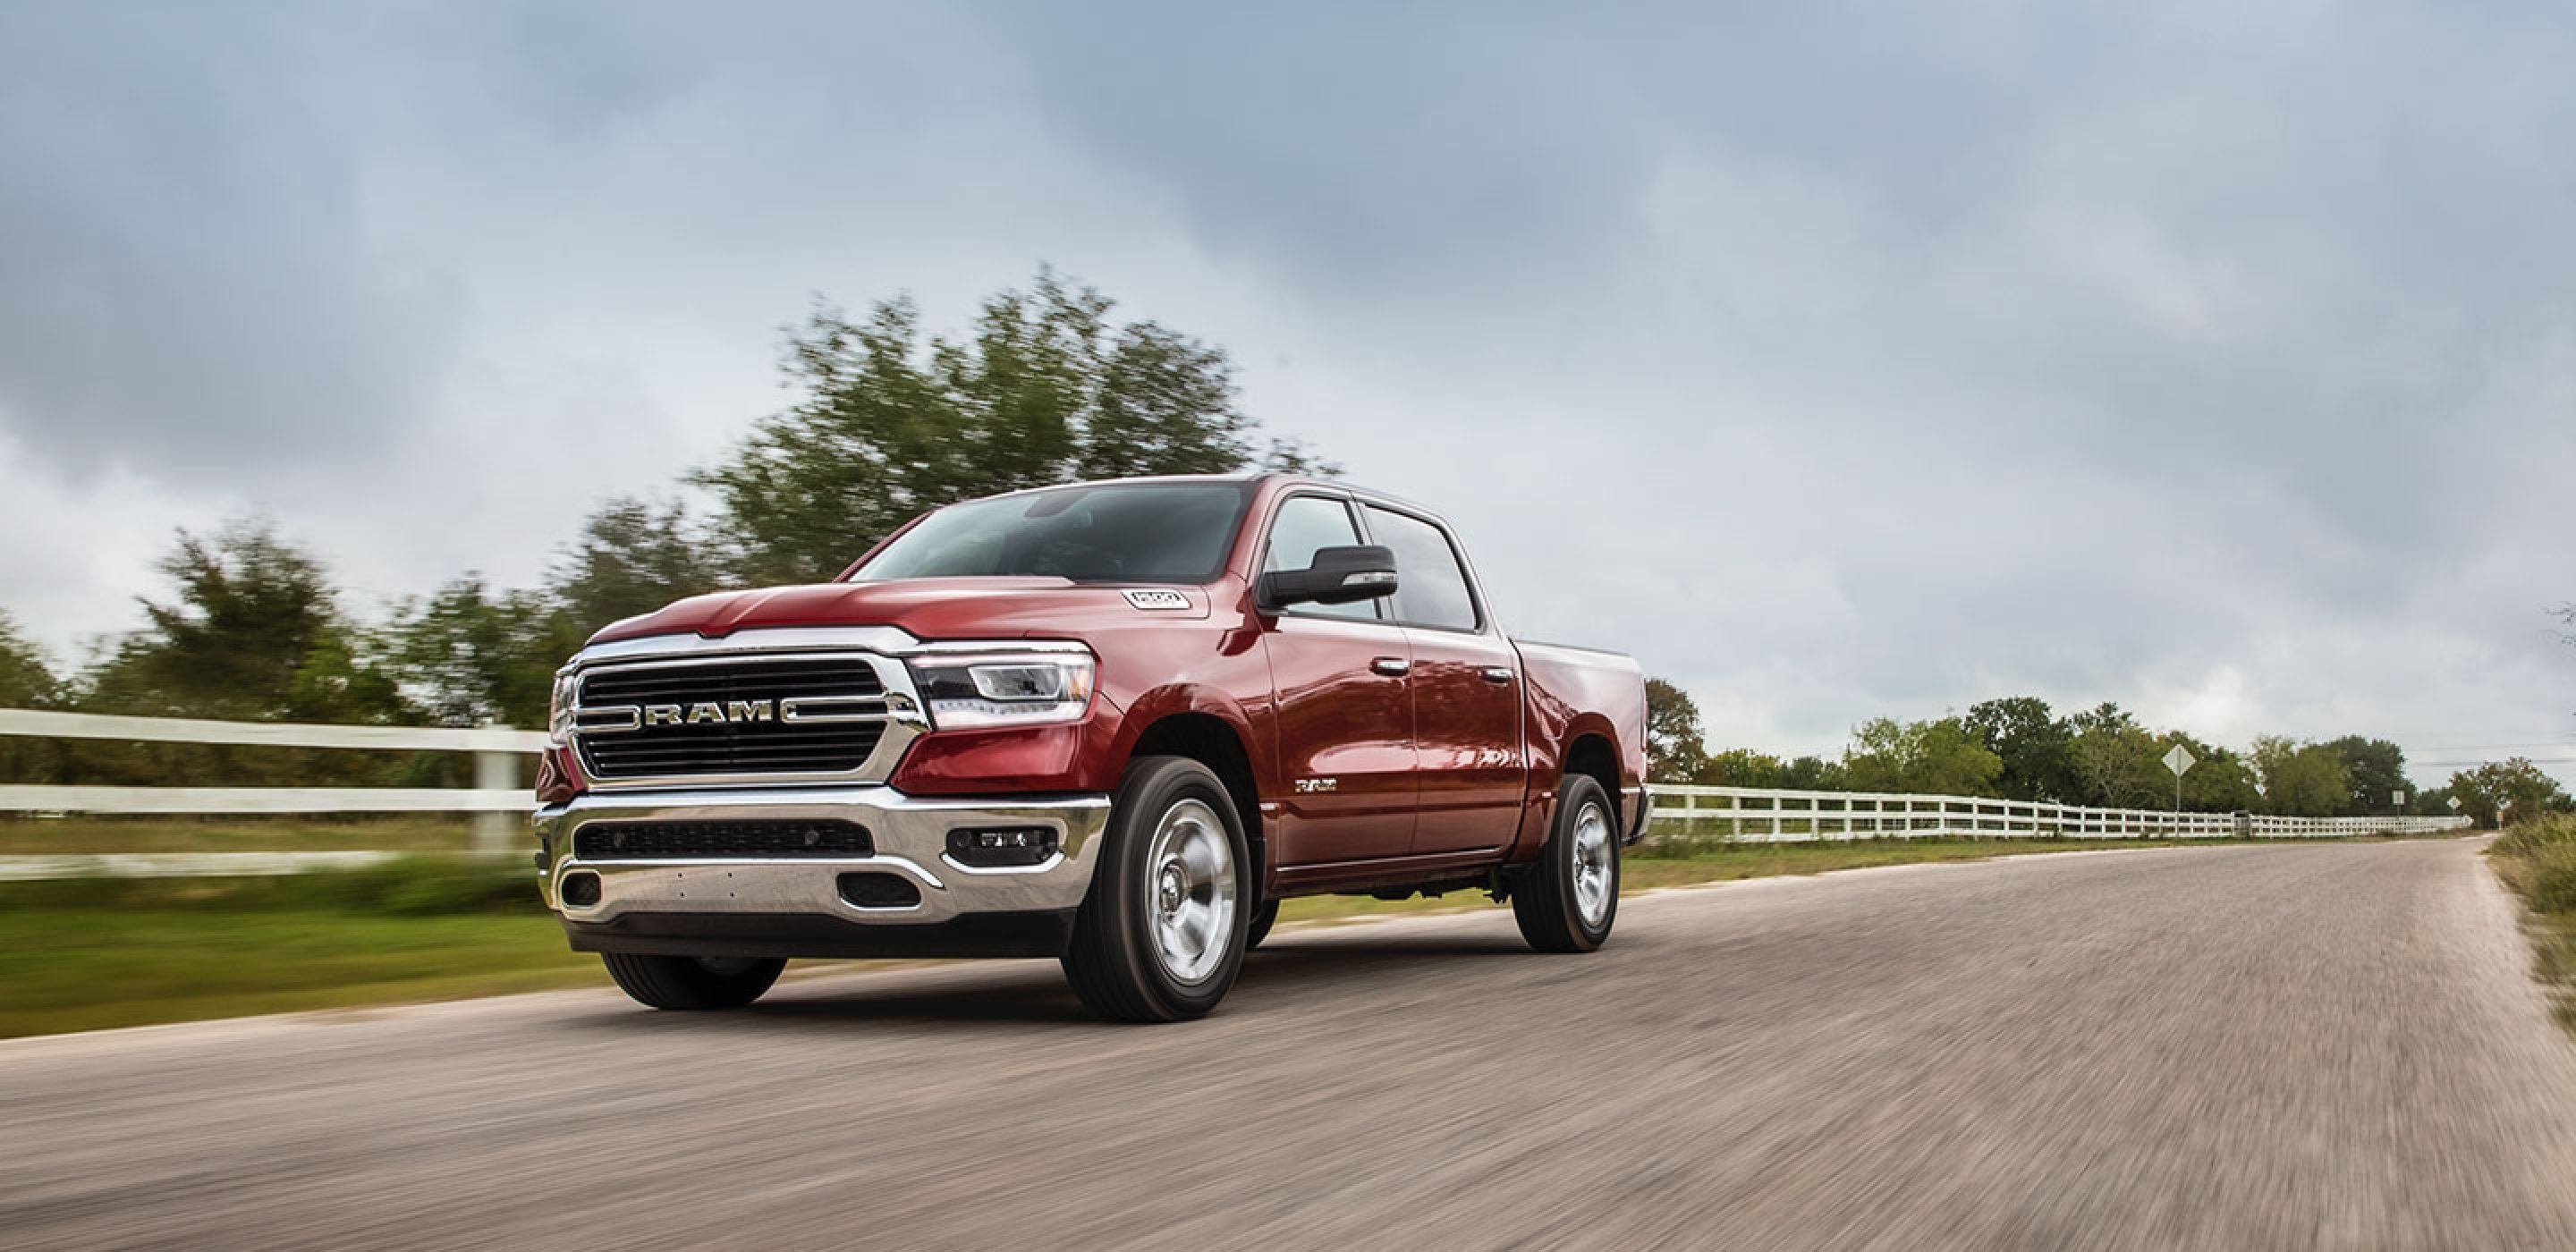 red 2020 ram 1500 driving on a country road